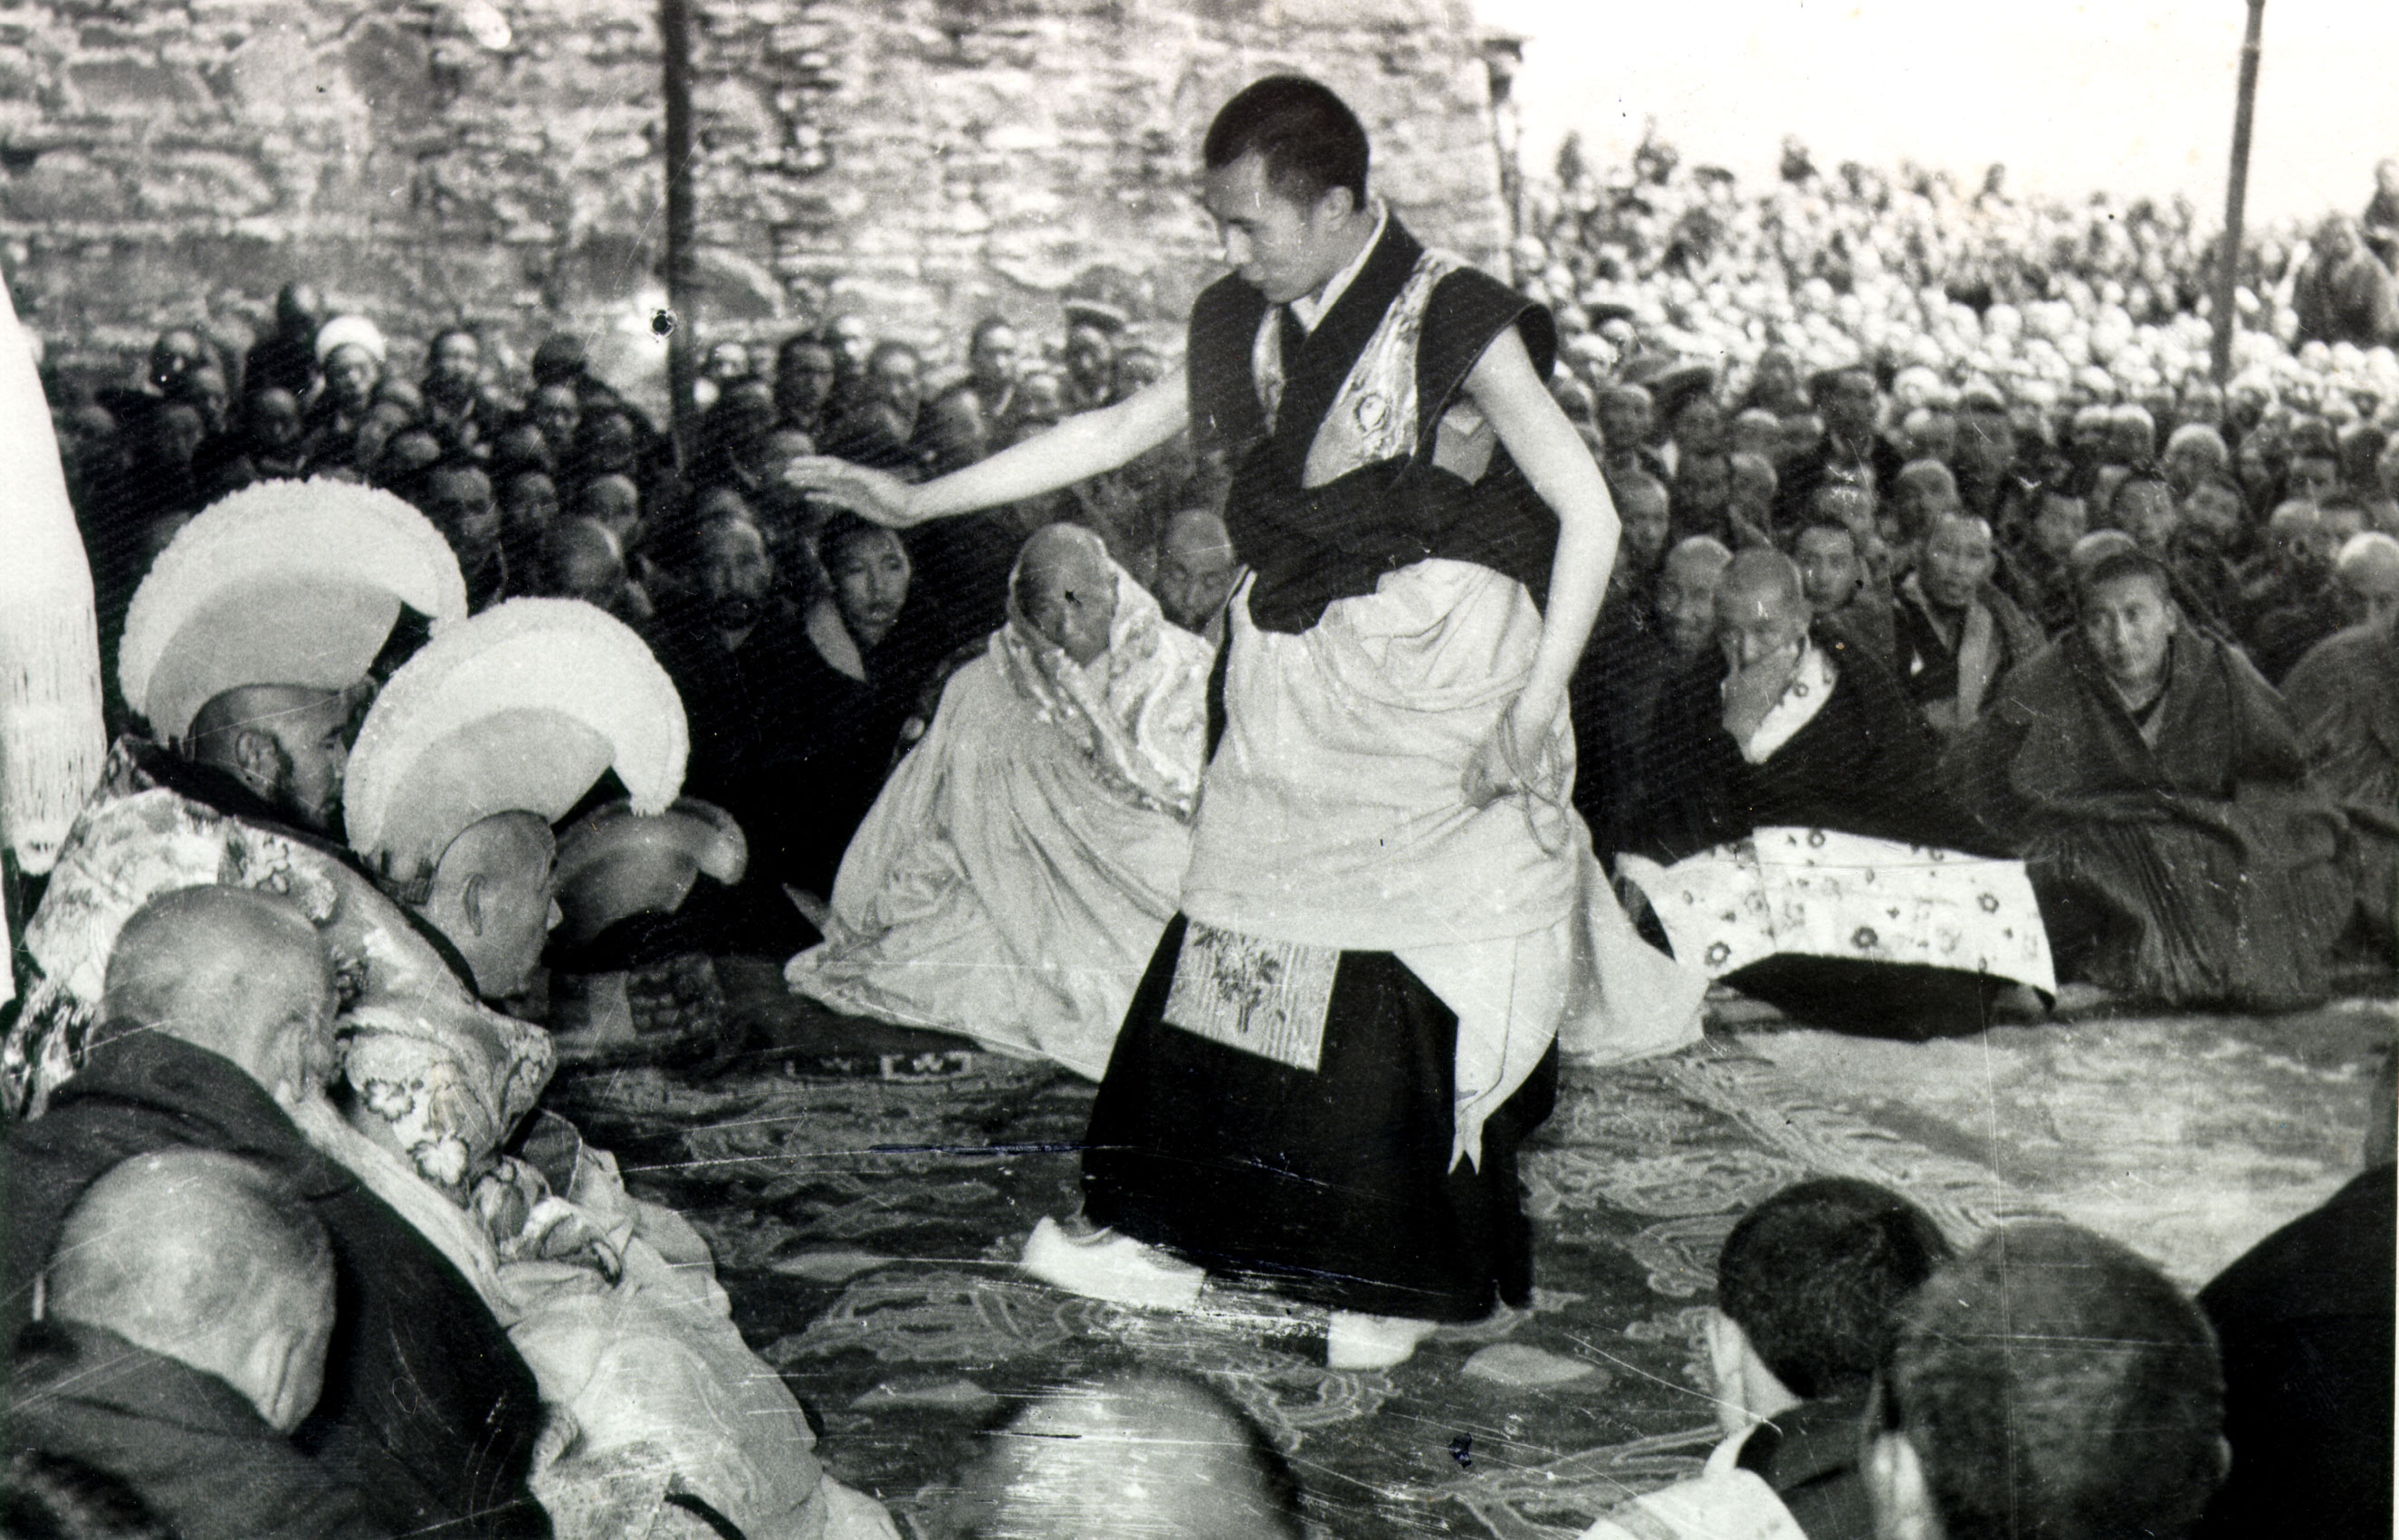 His Holiness at age 23 during his final Geshe Lharampa examinations in Lhasa, Tibet which took place from the summer of 1958 to February 1959.